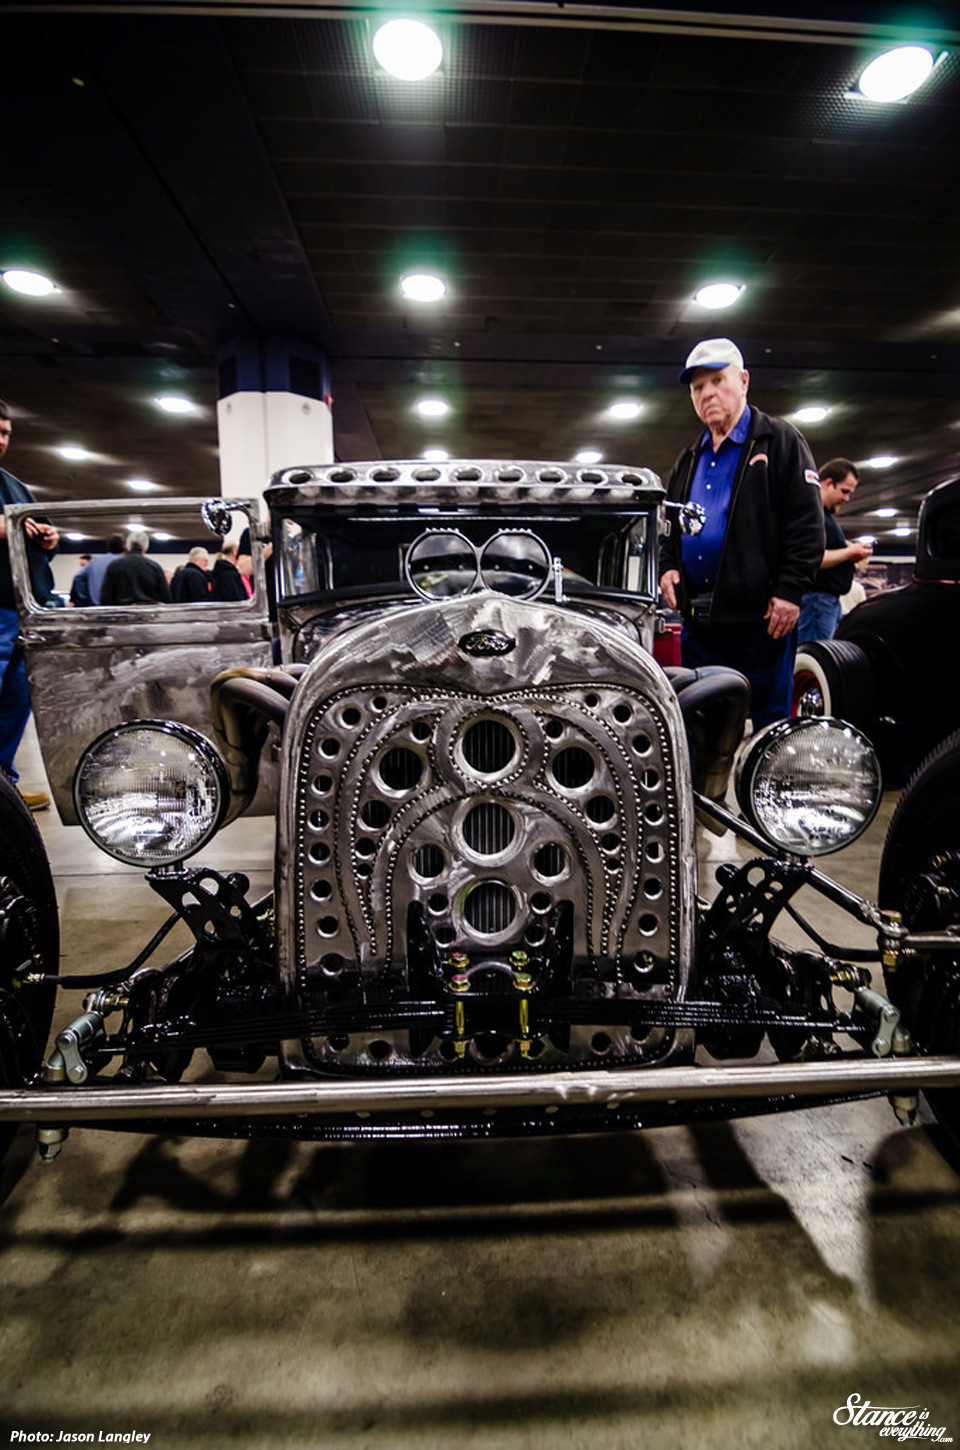 detroit-autorama-extreme-2015-bar-metal-32-2